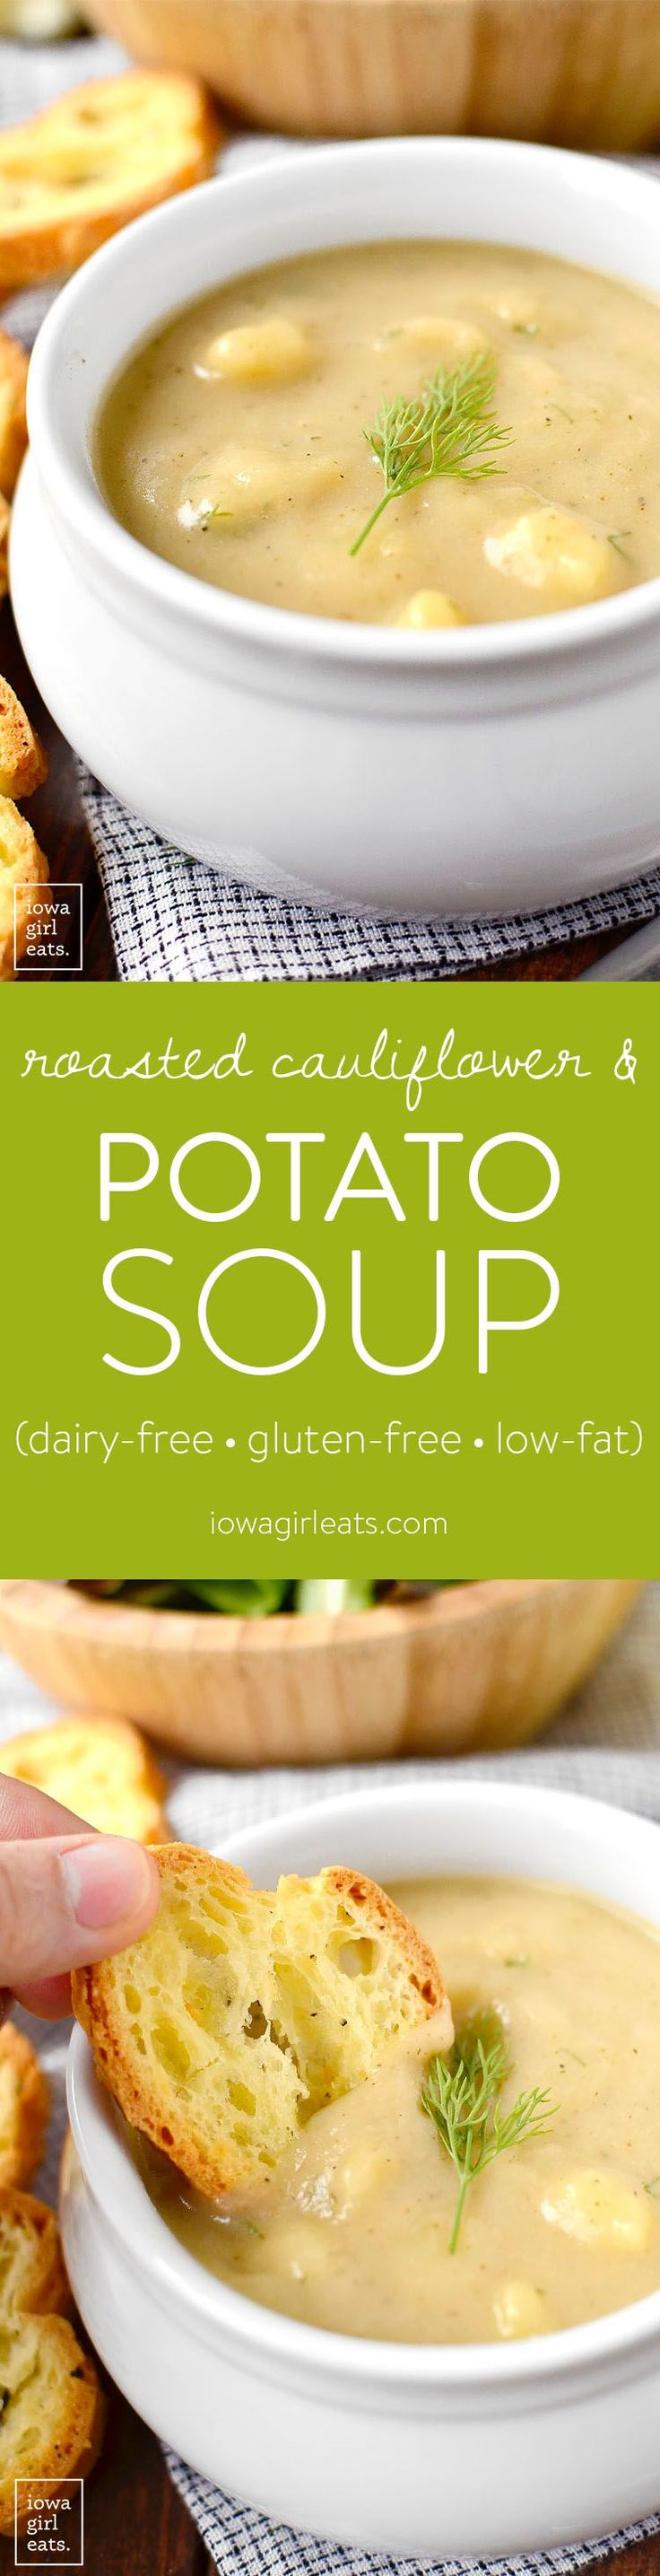 Roasted Cauliflower and Potato Soup is velvety smooth and decadent-tasting yet low-fat, gluten-free, and dairy-free!